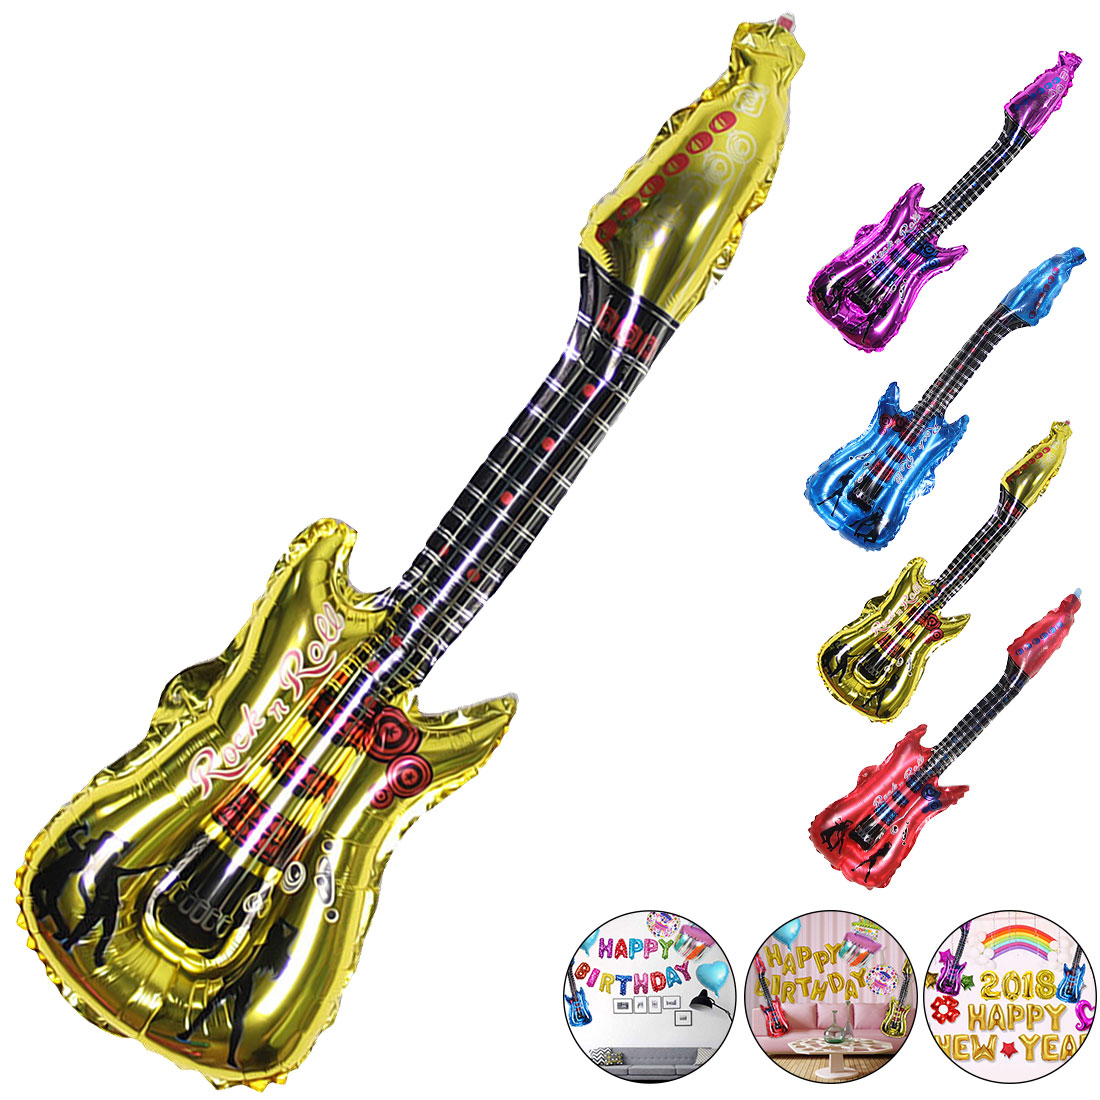 Party Supplies Balloons 4 Colors 1pc 85x30cm Cartoon Guitar Balloons Inflatable Air Globo Kids Toys Birthday Ballon Classic Toys Event & Party